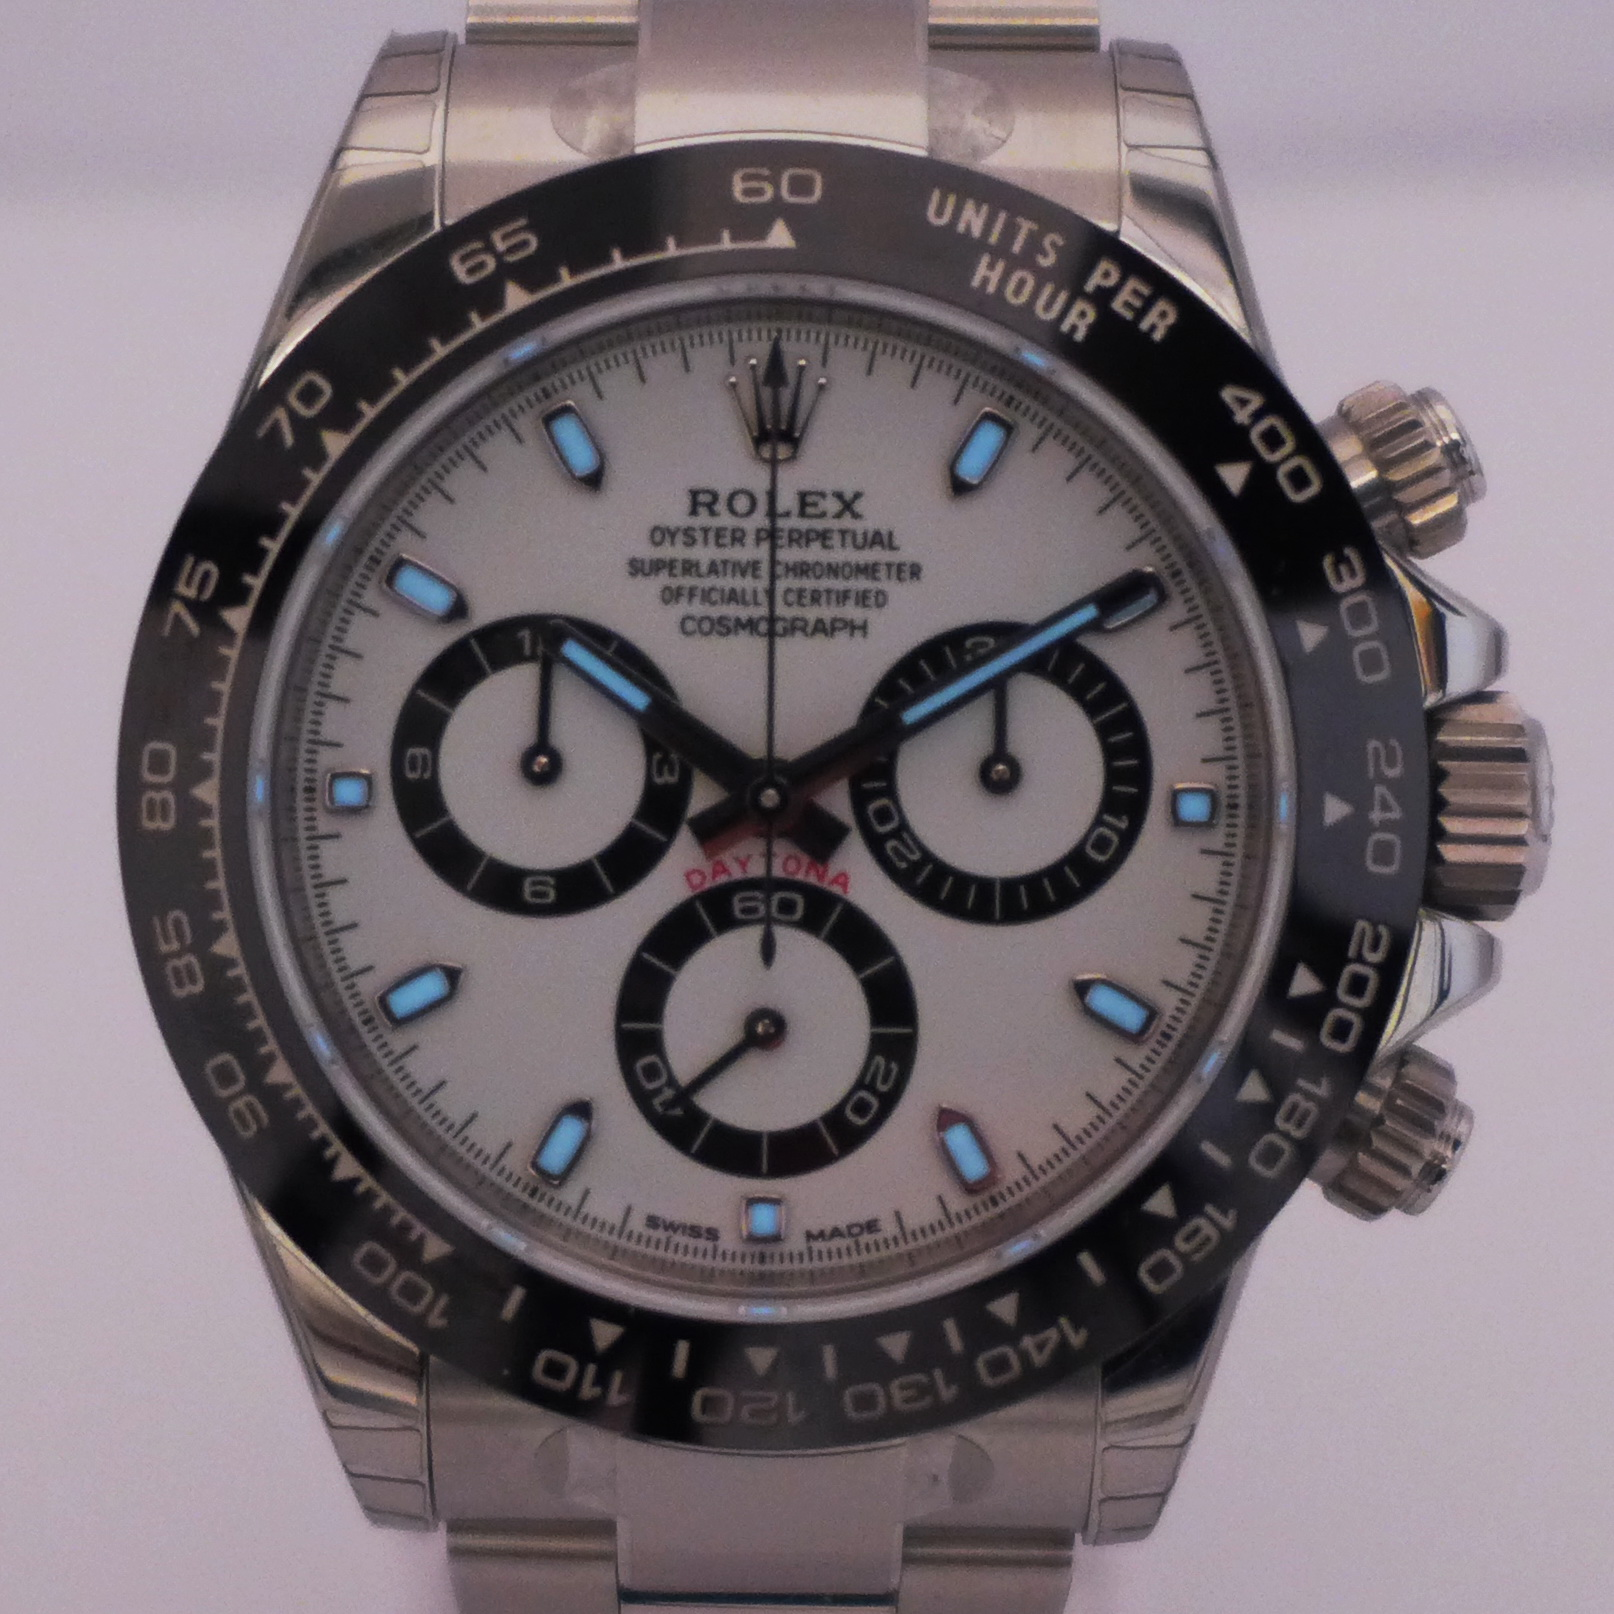 rolex daytona edelstahl neu ungetragen brd wempe papiere. Black Bedroom Furniture Sets. Home Design Ideas